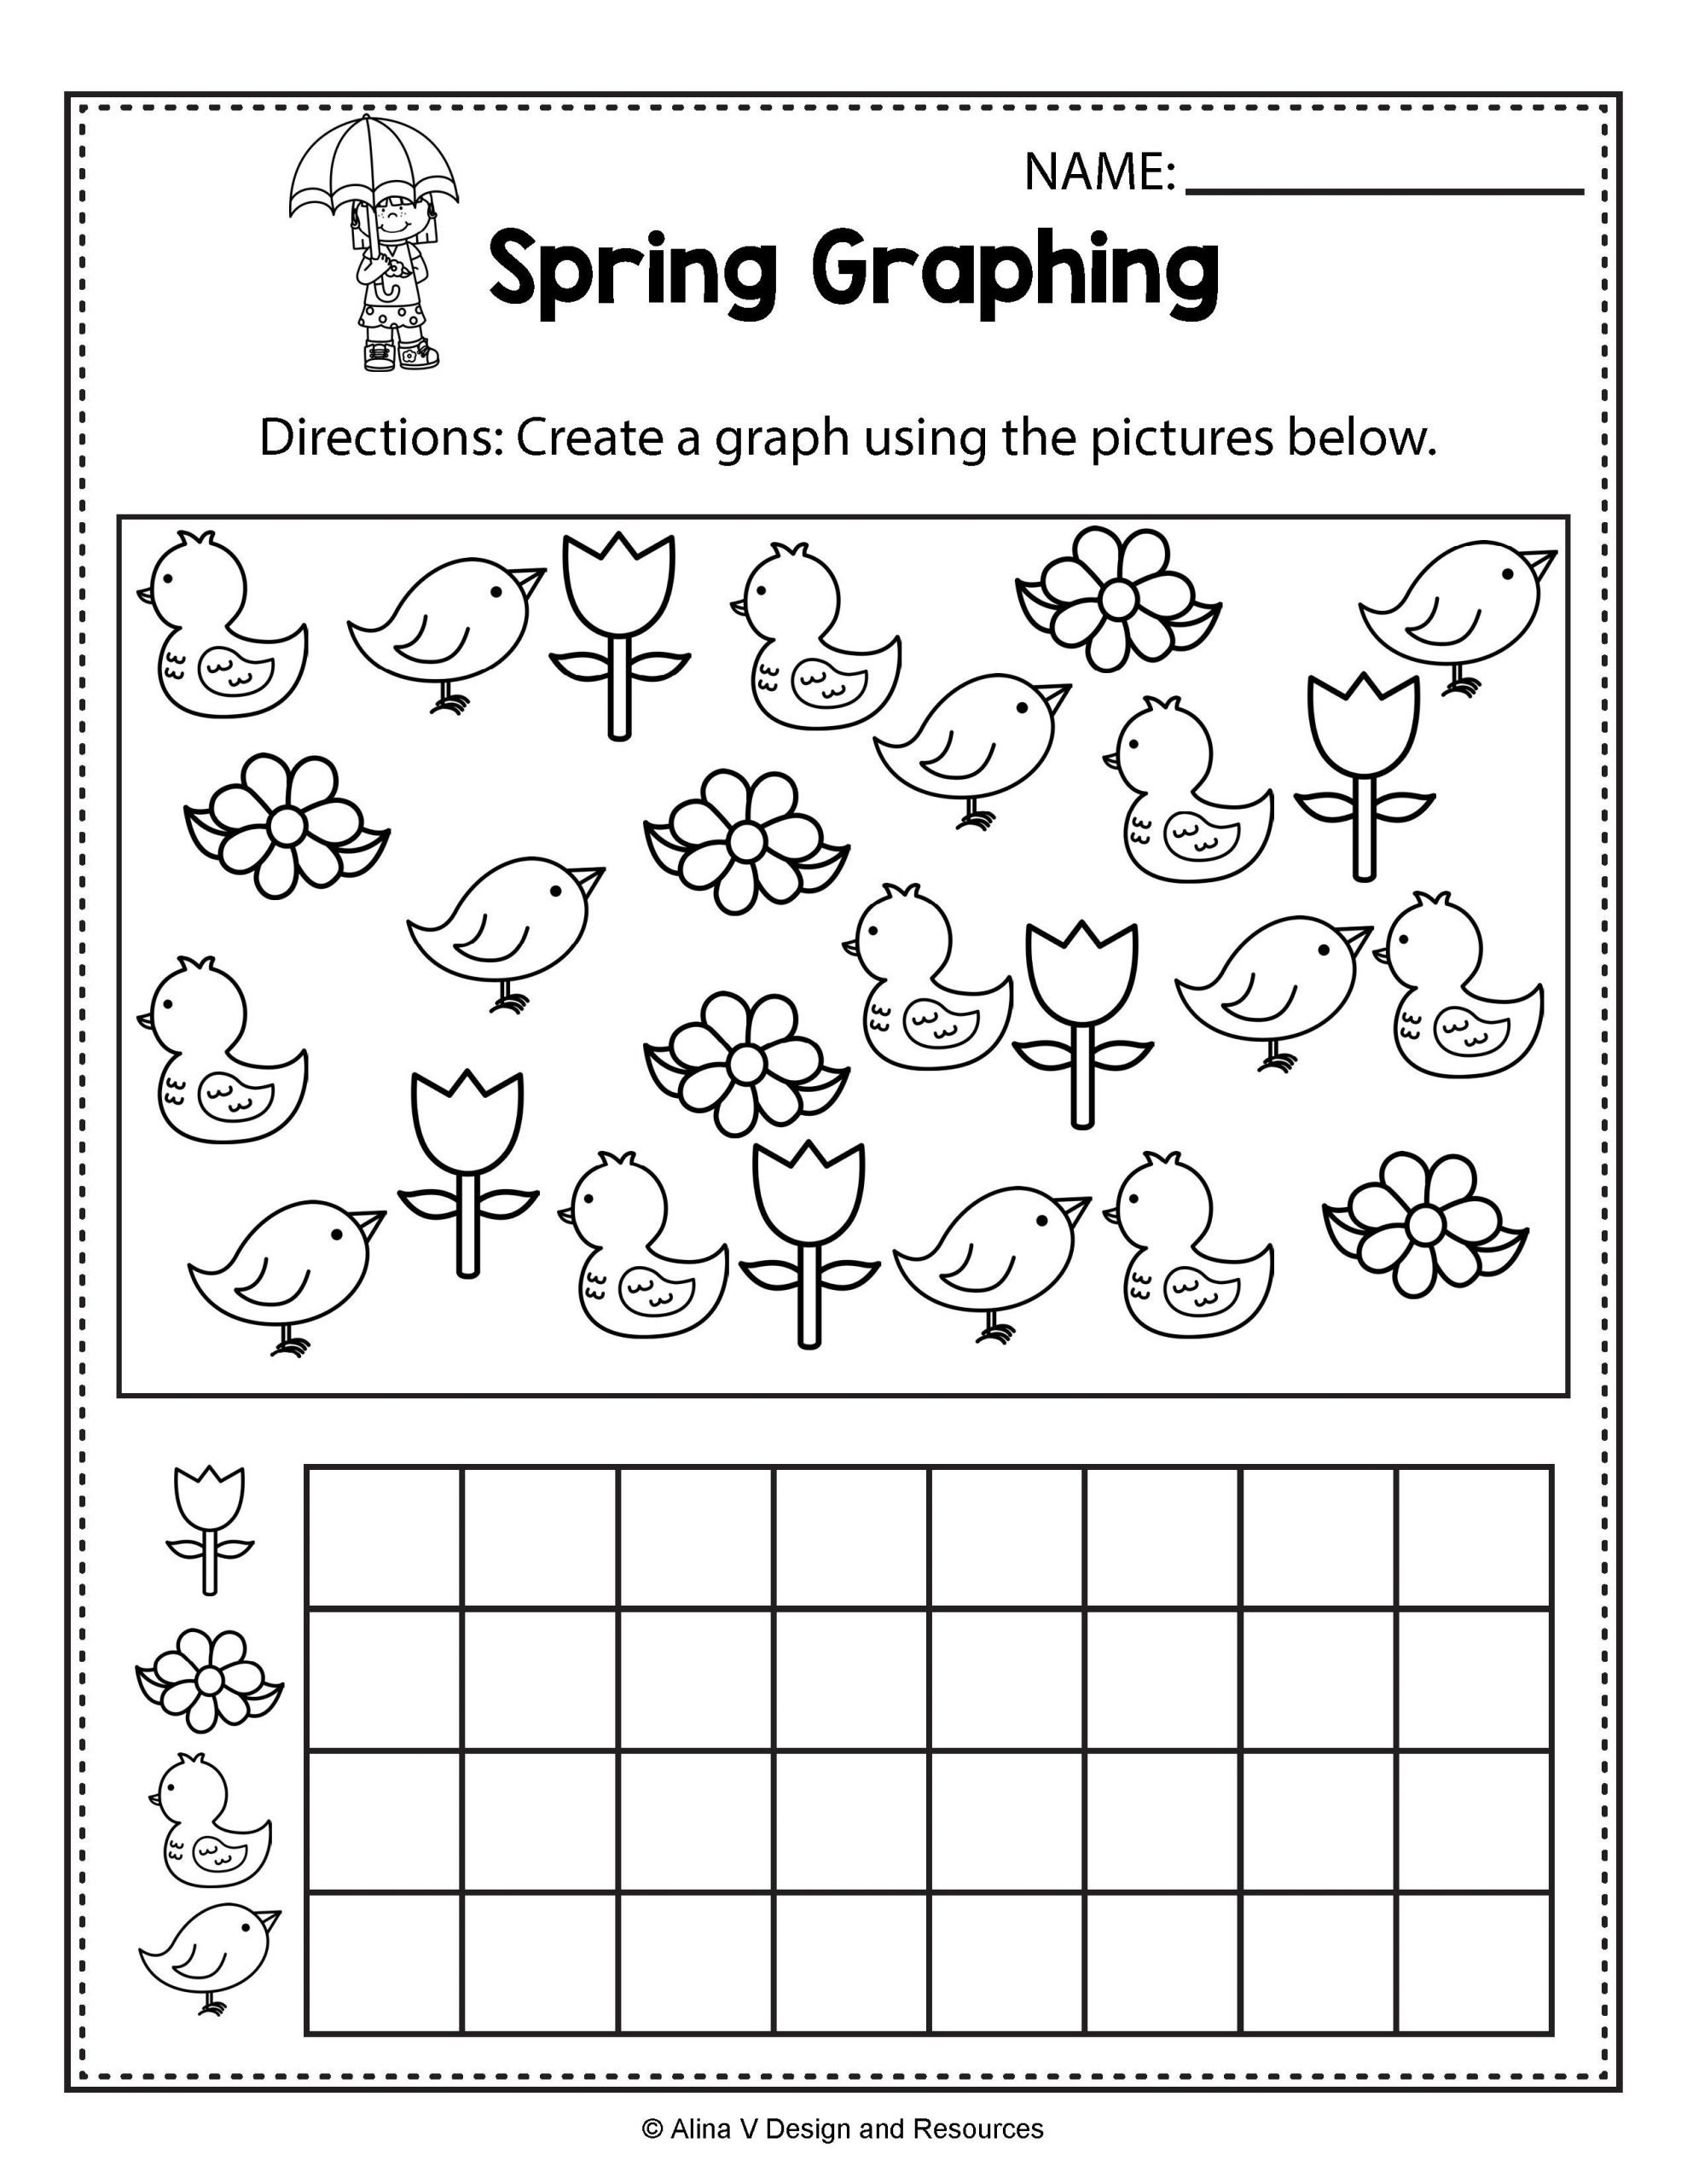 Free Graphing Worksheets for Kindergarten Spring Graphing Spring Math Worksheets and Activities for